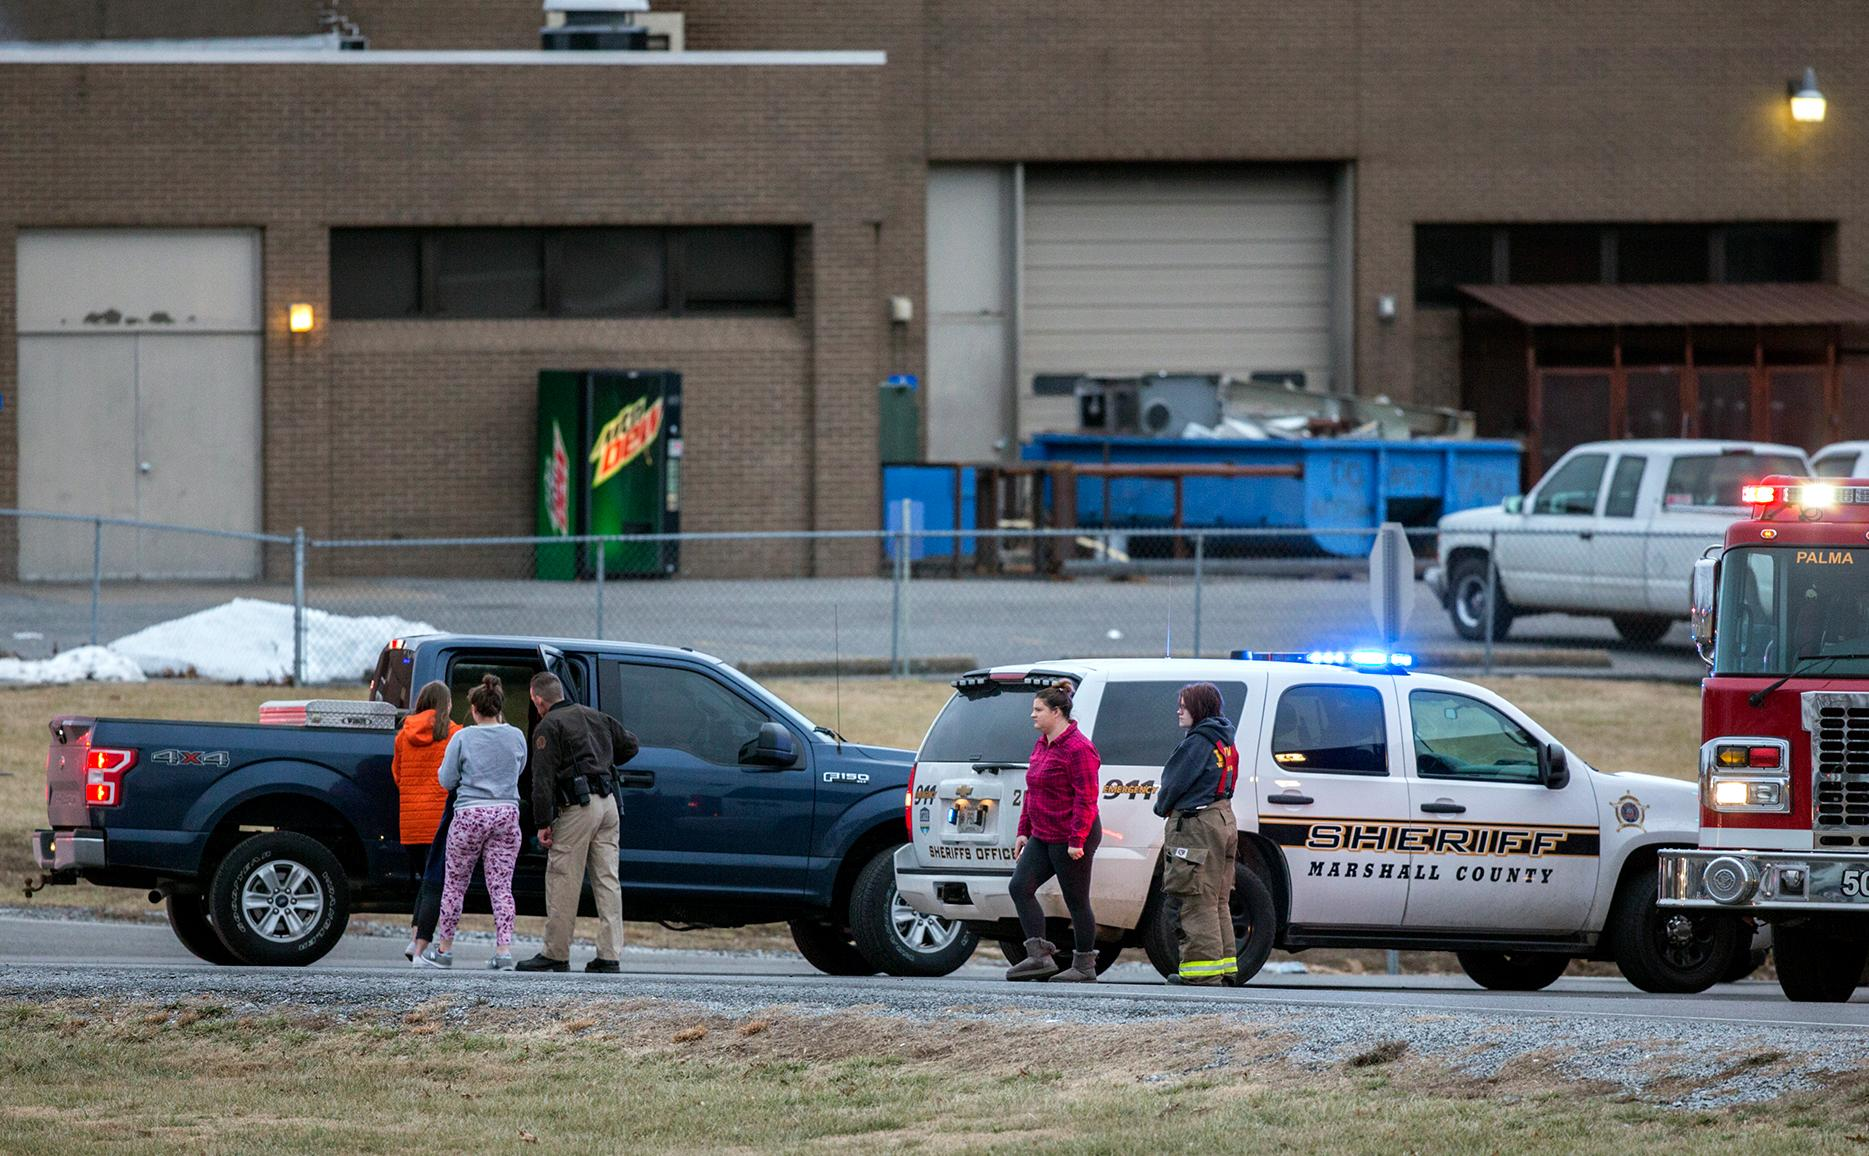 Marshall County High School students are escorted to retrieve their vehicles by emergency responders after a deadly shooting at the school in Benton, Ky., Tuesday, Jan. 23, 2018. (Ryan Hermens/The Paducah Sun via AP)